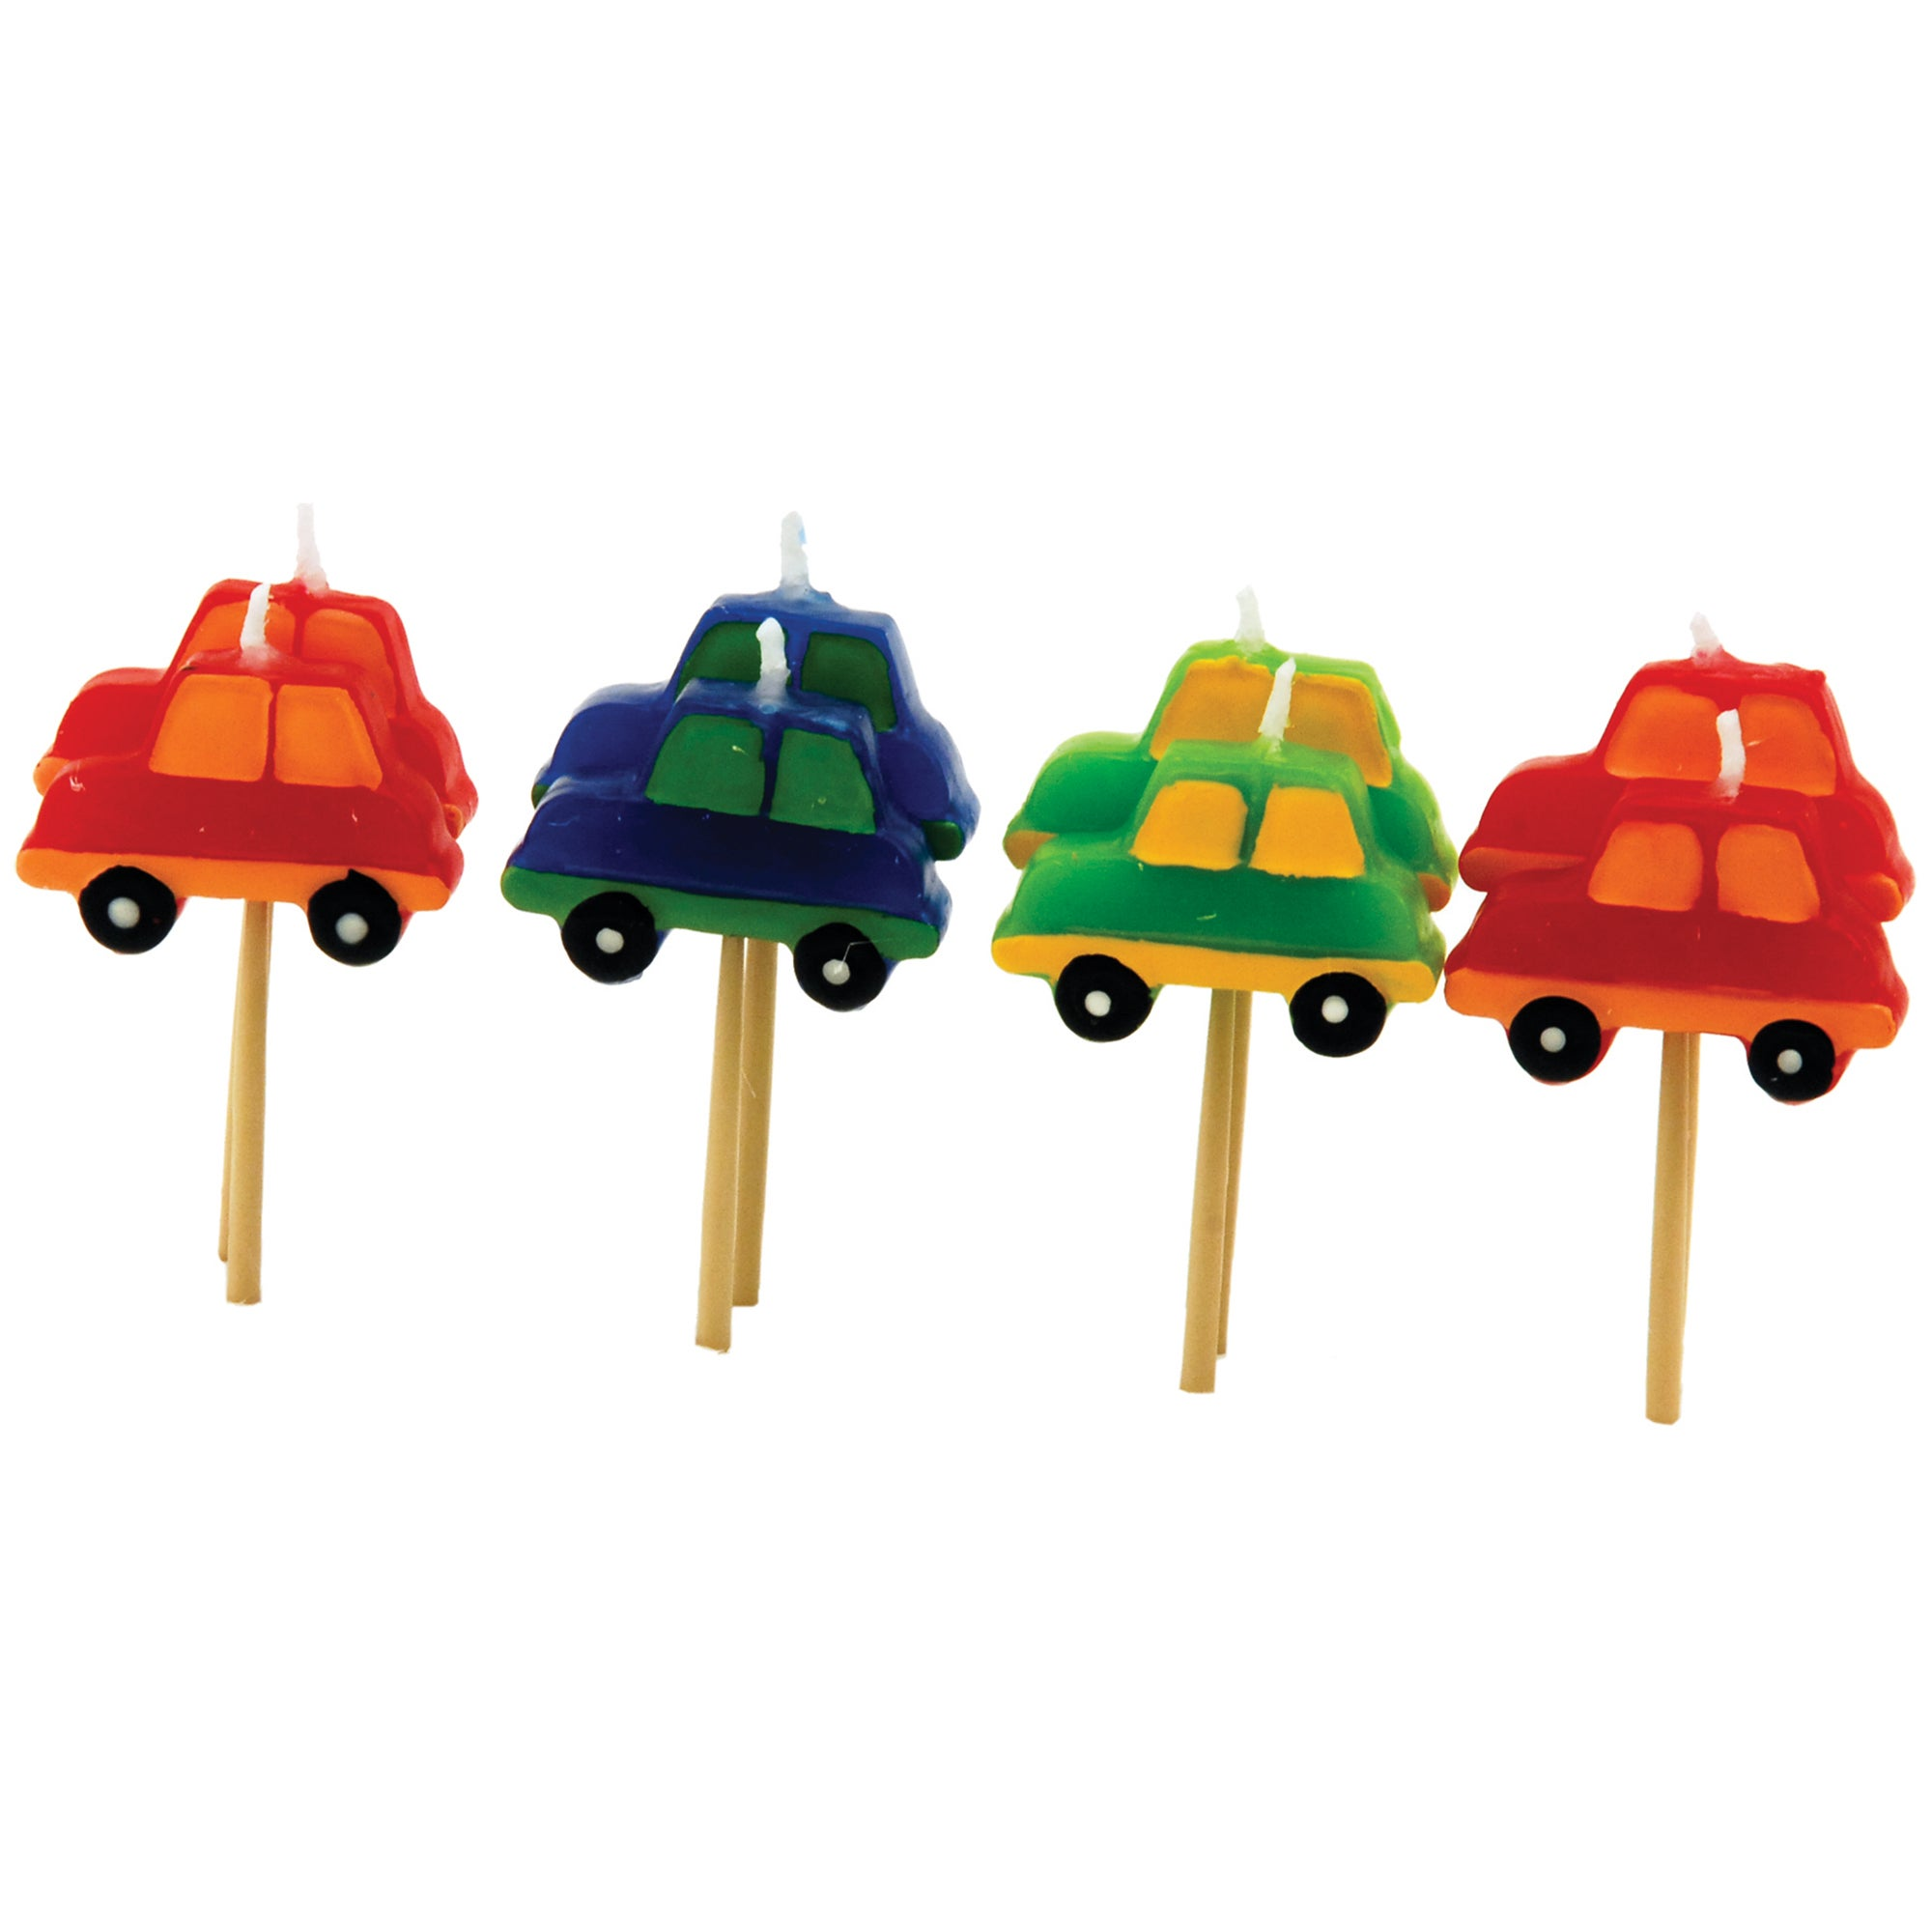 Tala Set of 8 Car Candles